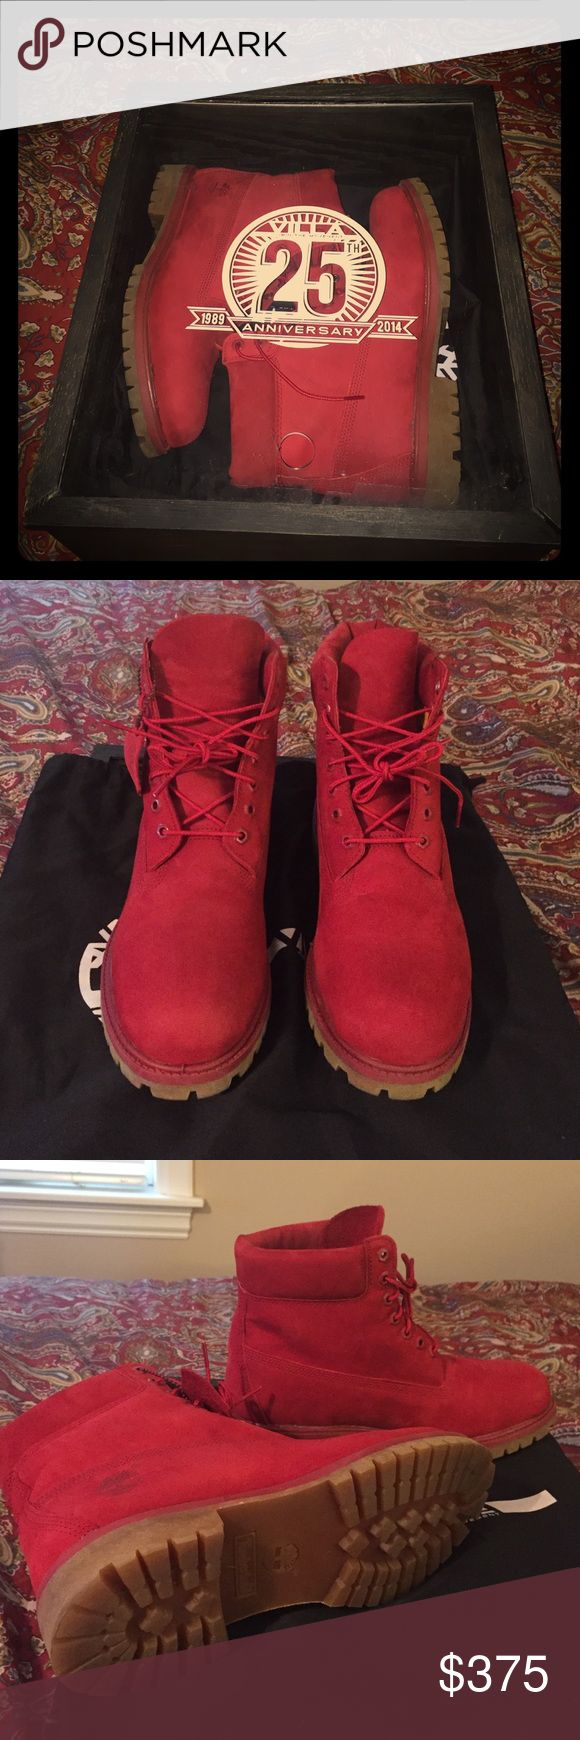 """Mens ruby red timberland boots size 11 RARE!! Mens timberland boot in red/mono Premium 6"""" that dropped in 2015!! These boots are hot and we're sold old immediately! I only tried these boots on never wore them once check the pictures!! These are gems i will sit on them until I get the right price i want. If you can buy for cheaper in size 11 on different site please do! But you won't find them brand new for this price with receipt/ proof of purchase !! Timberland Shoes Boots"""